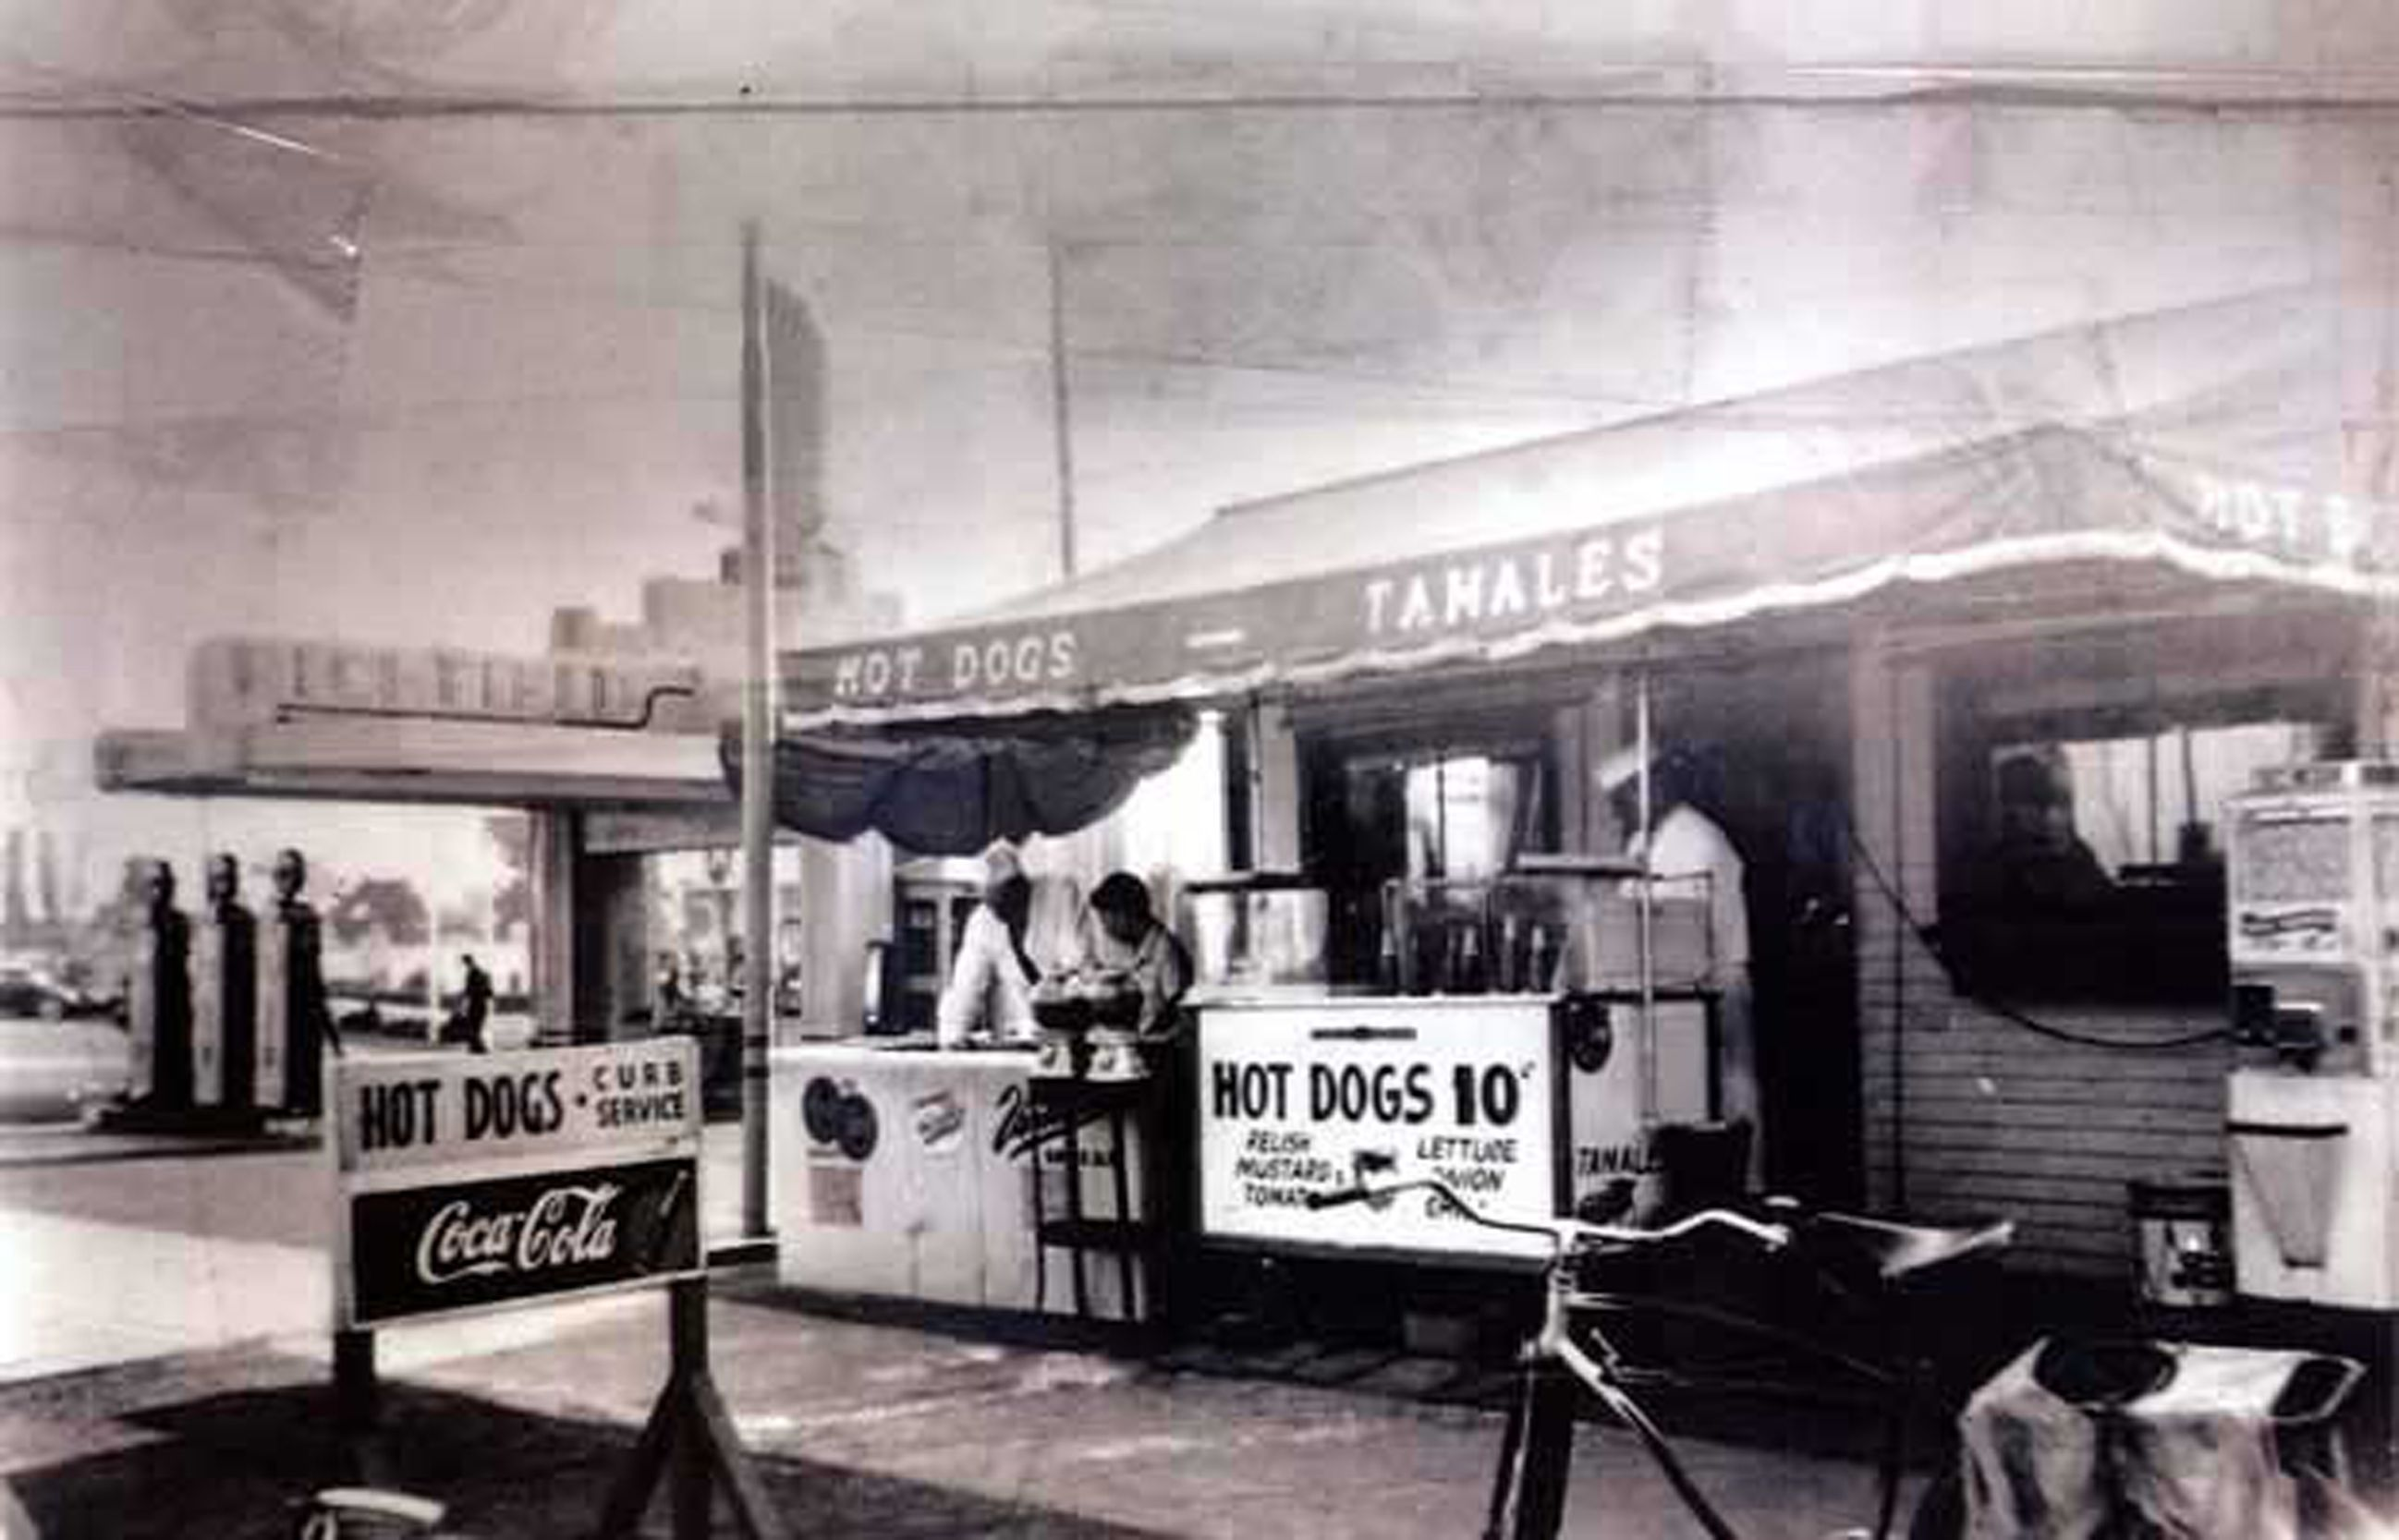 Pink S Hot Dogs In 1942 Its Third Year In Business Address 709 N La Brea Avenue Source Water And Los Angeles History Emotional Pictures Pink S Hot Dogs